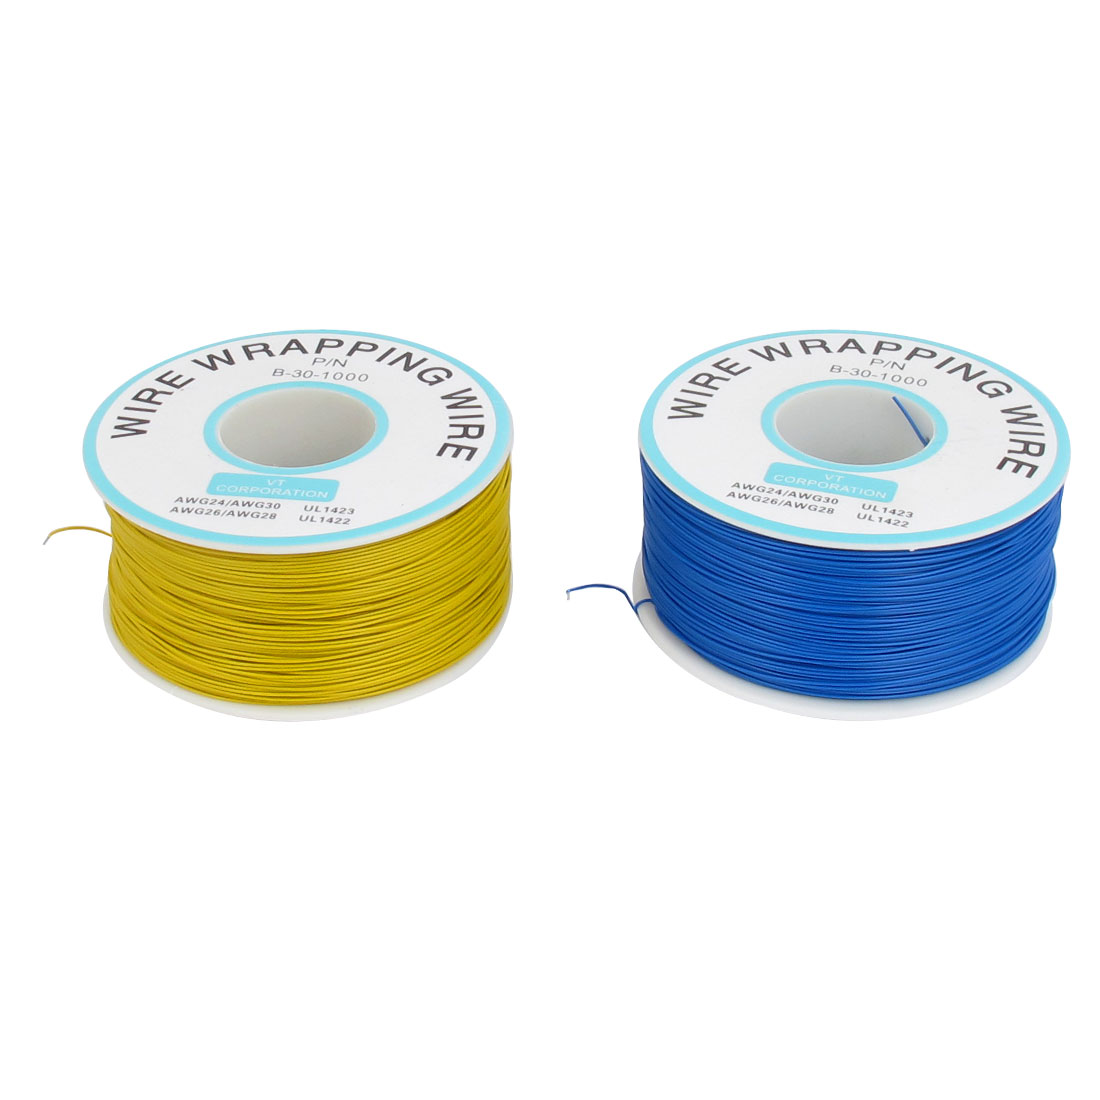 2 Pcs 305M P/N B-30-1000 30AWG PCB Solder Blue Yellow Flexible 0.25mm Dia Copper Tin Plated Wire-Wrapping Wires